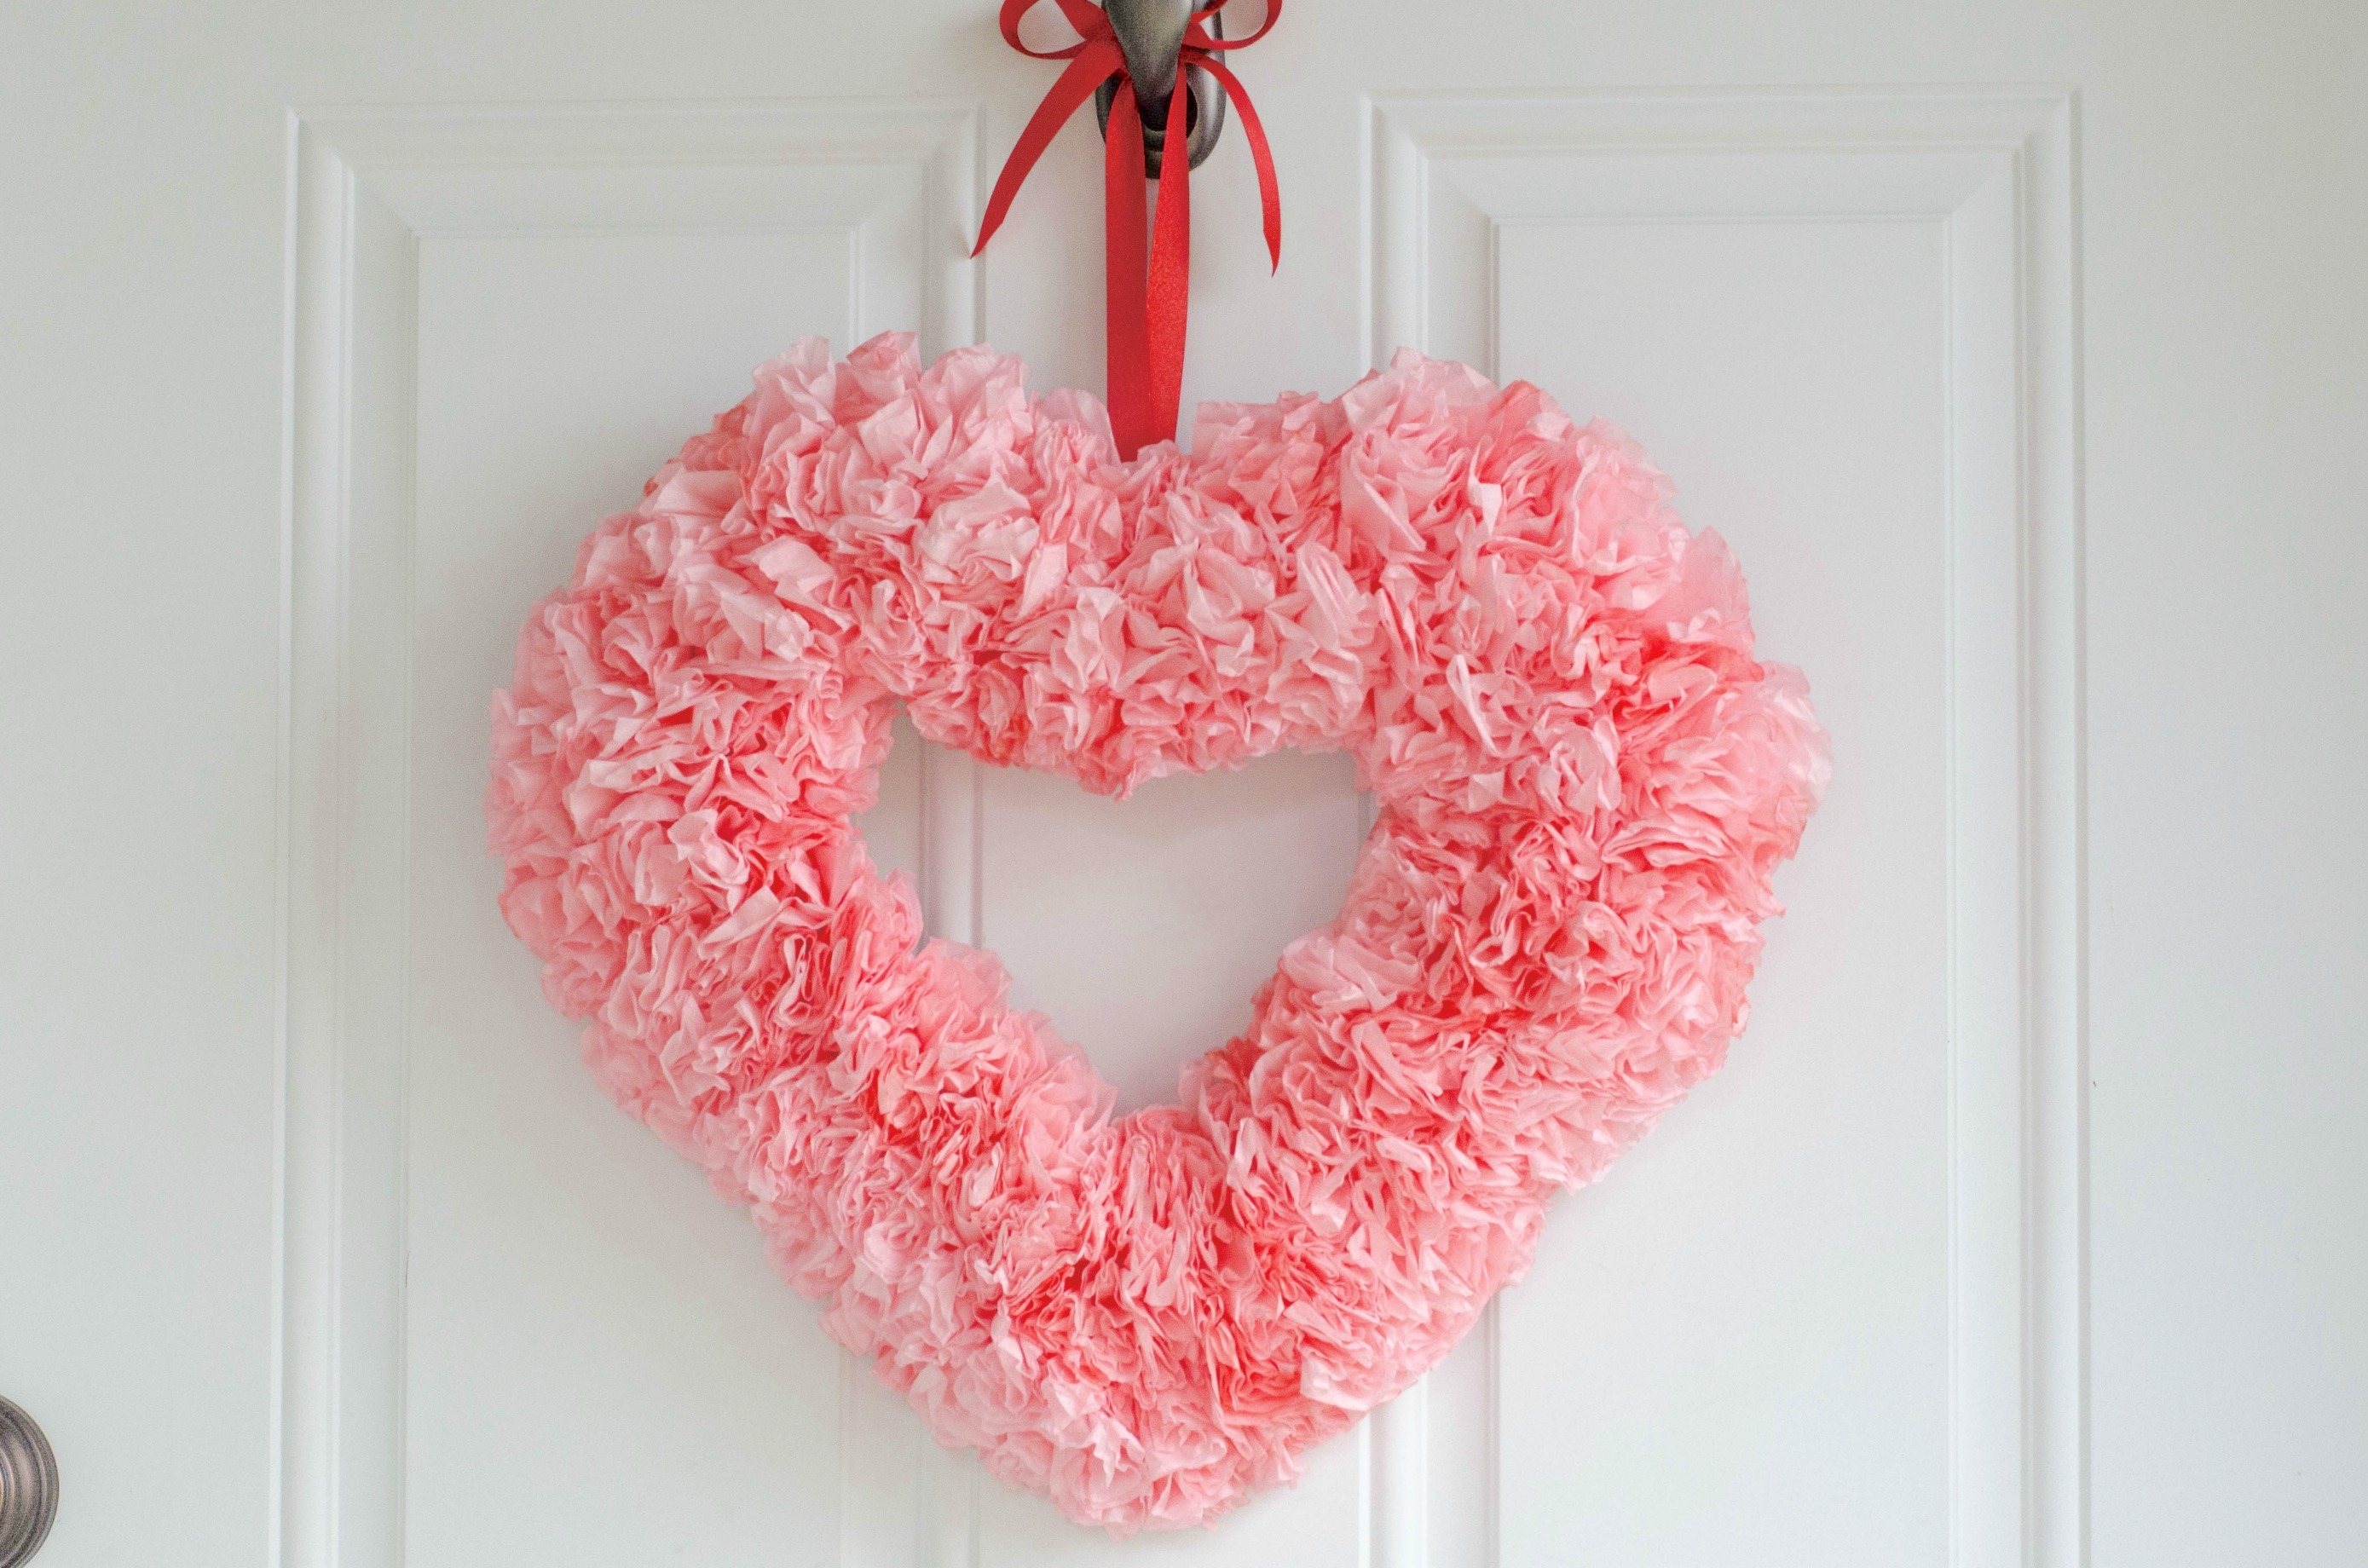 Coffee Filter Heart Wreath - perfect for Valentine's Day!